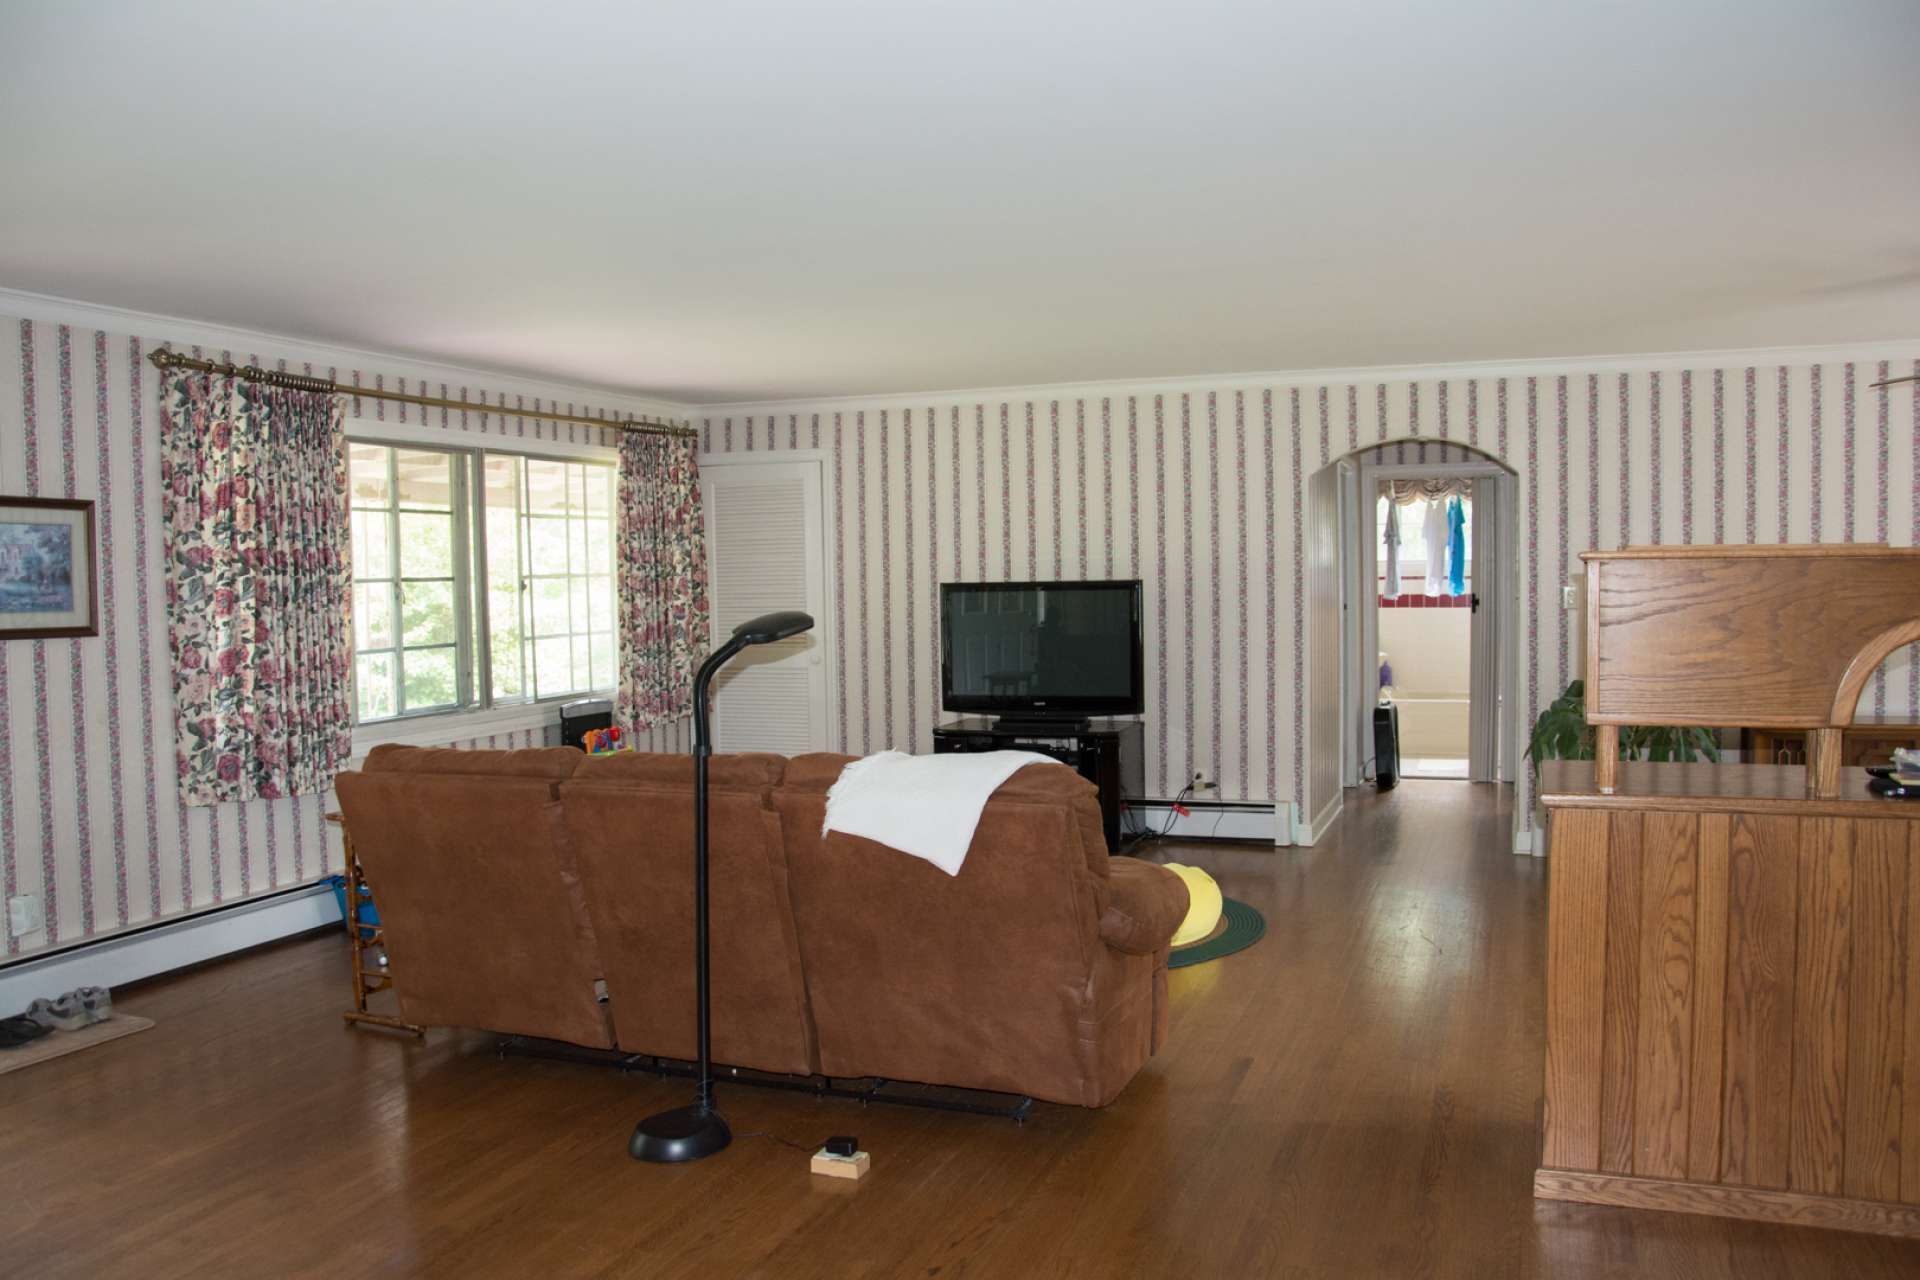 The main level offers a spacious living area with hardwood floors and a wood-burning fireplace.